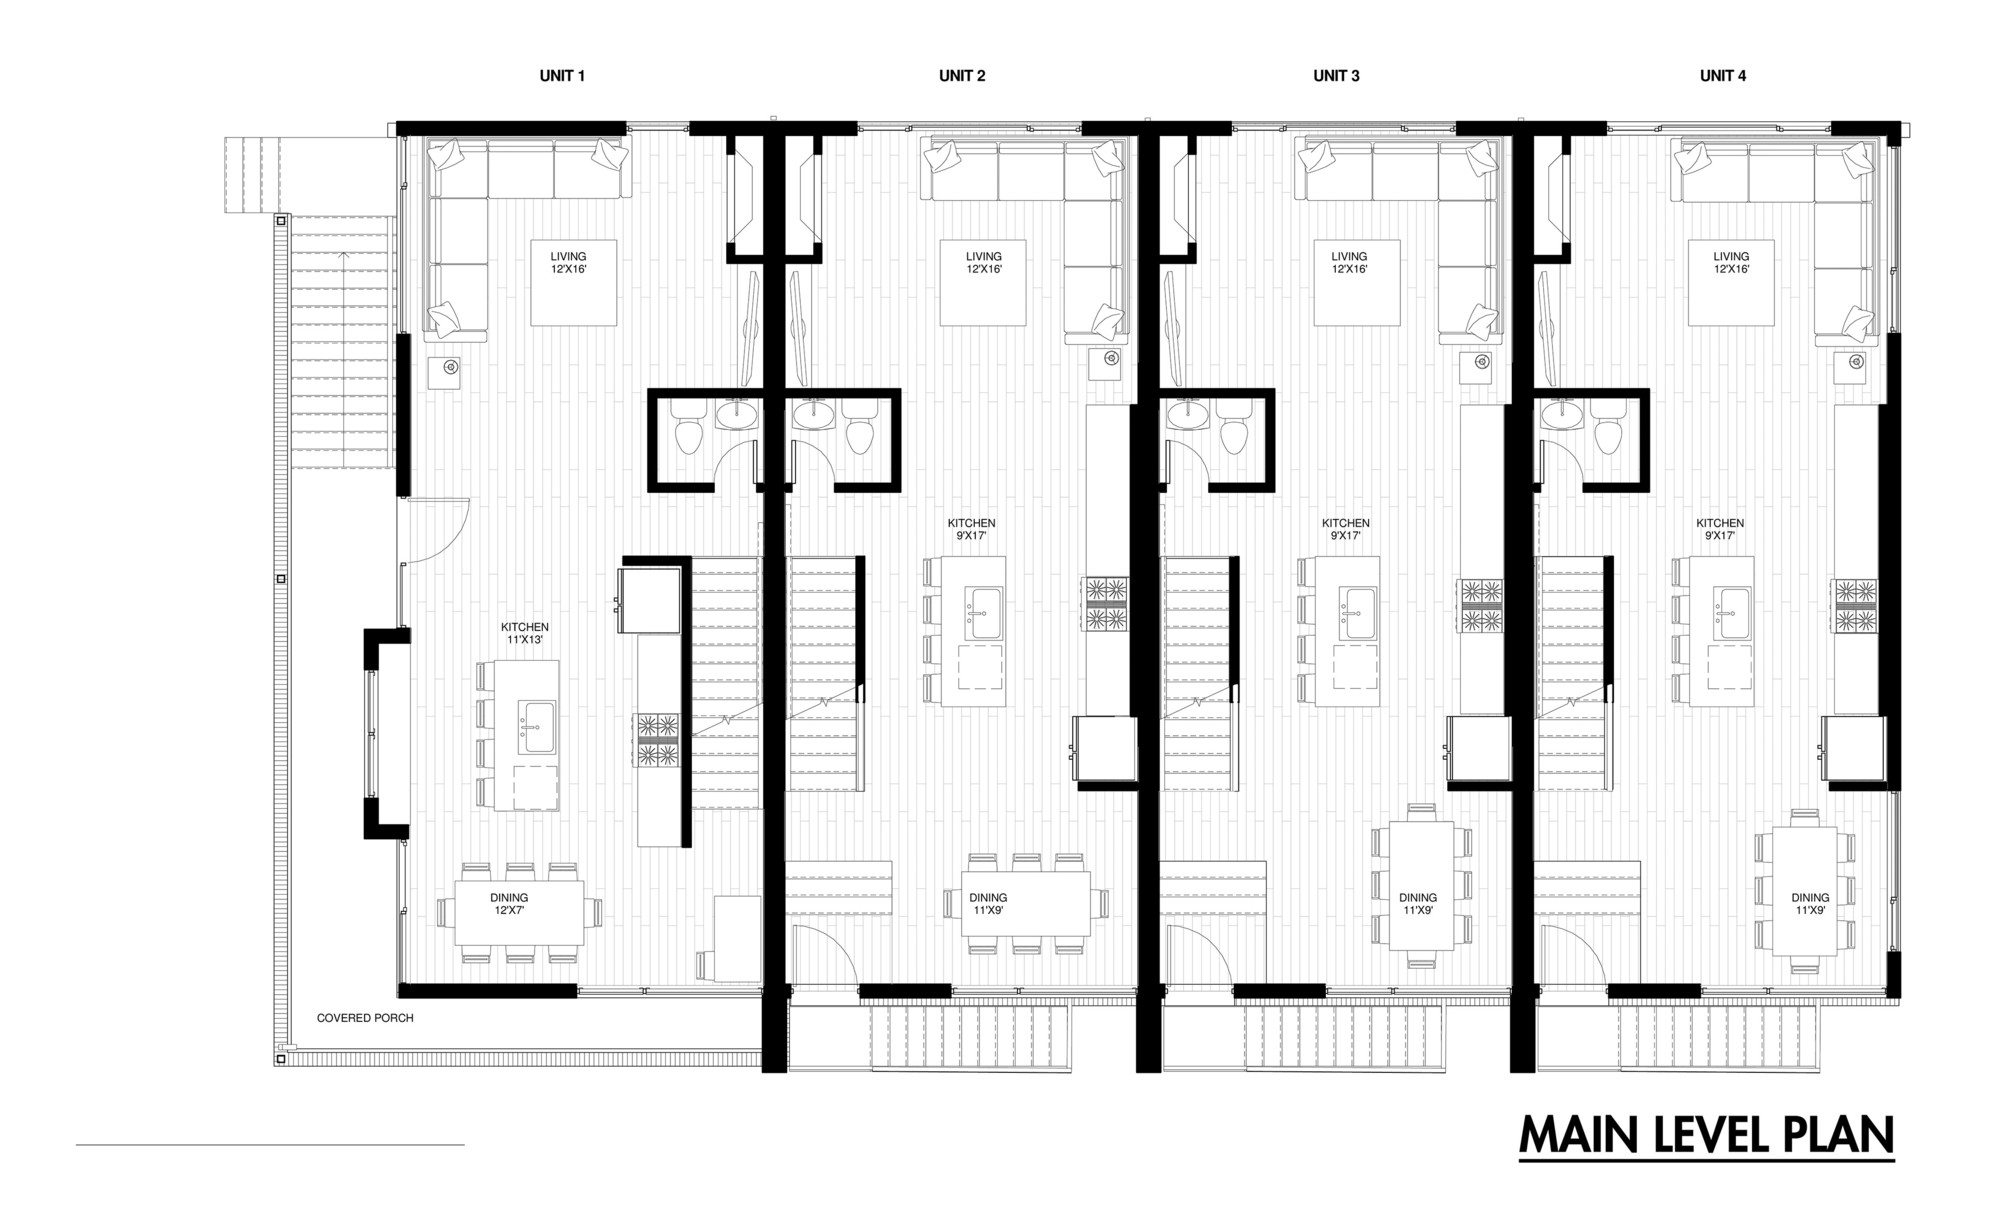 Emerson rowhouse meridian 105 architecture archdaily for Row house design plans